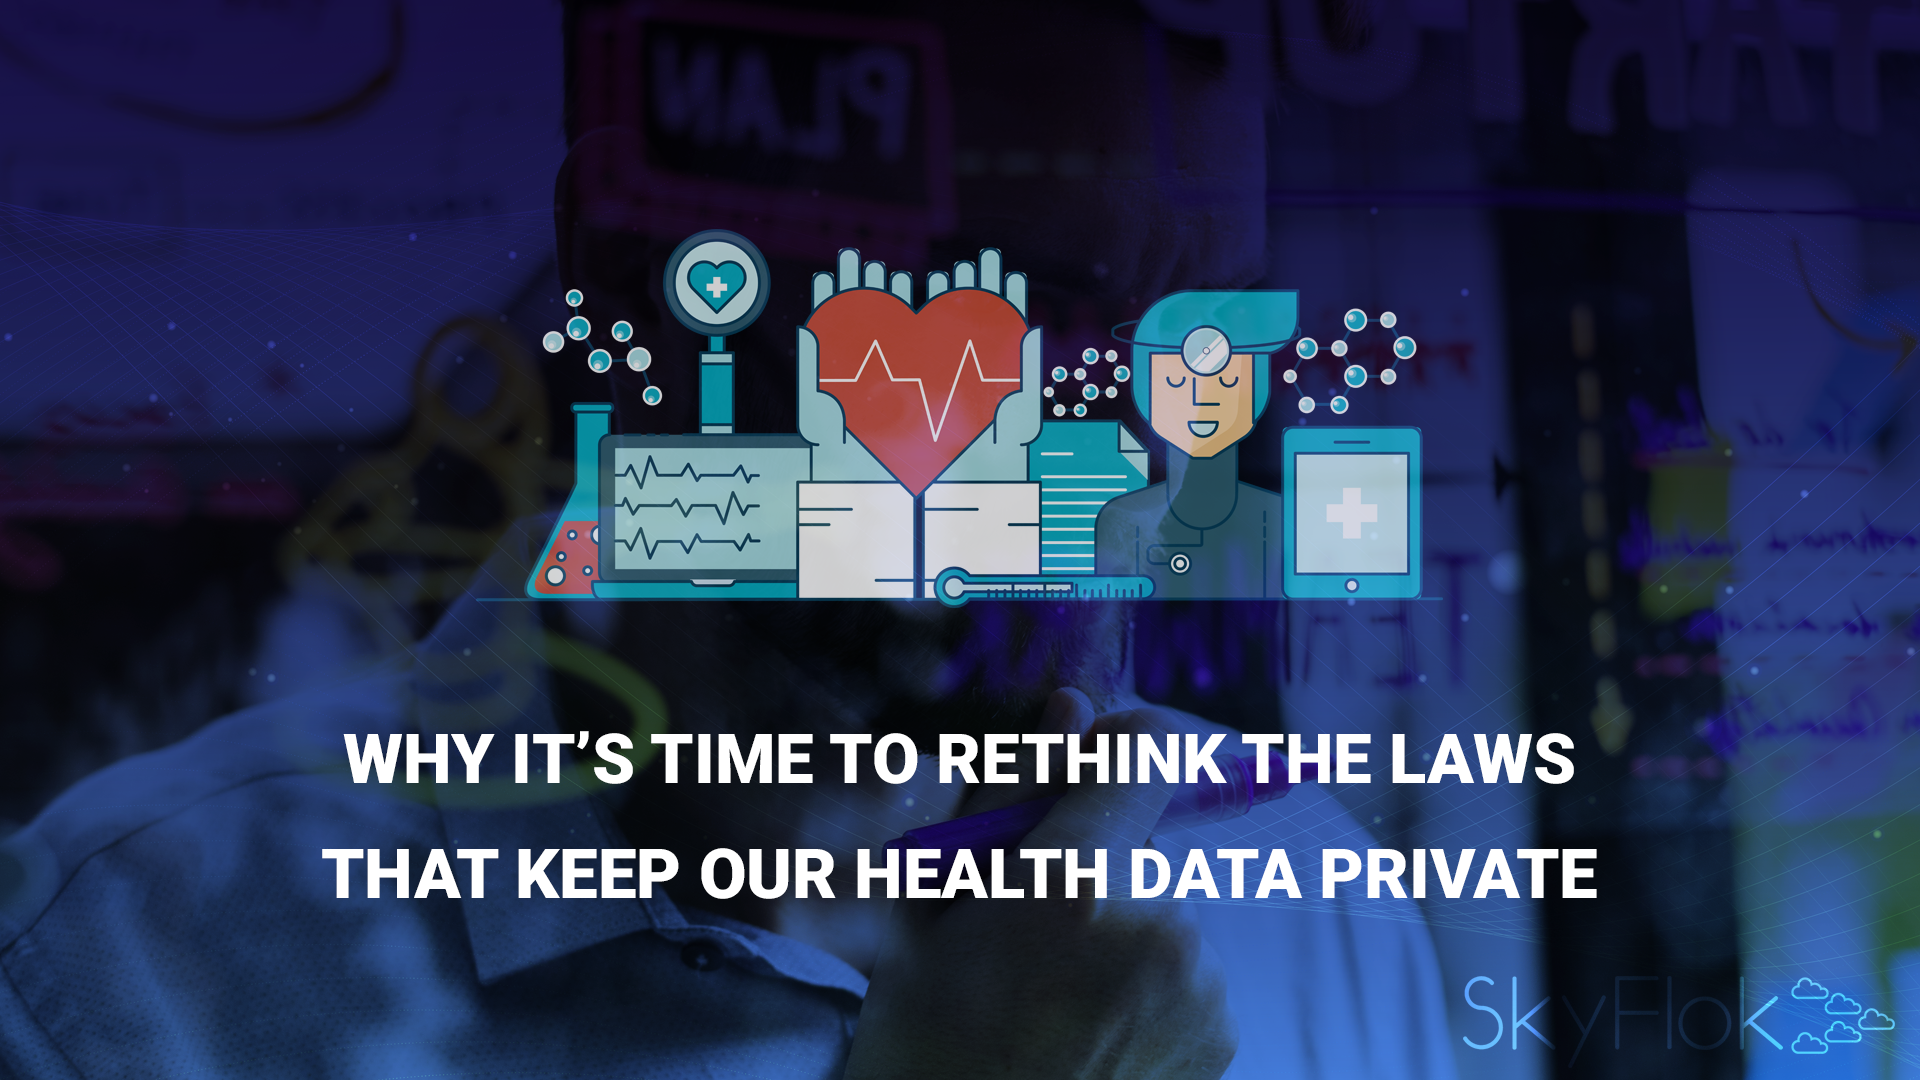 Why it's time to rethink the laws that keep our health data private